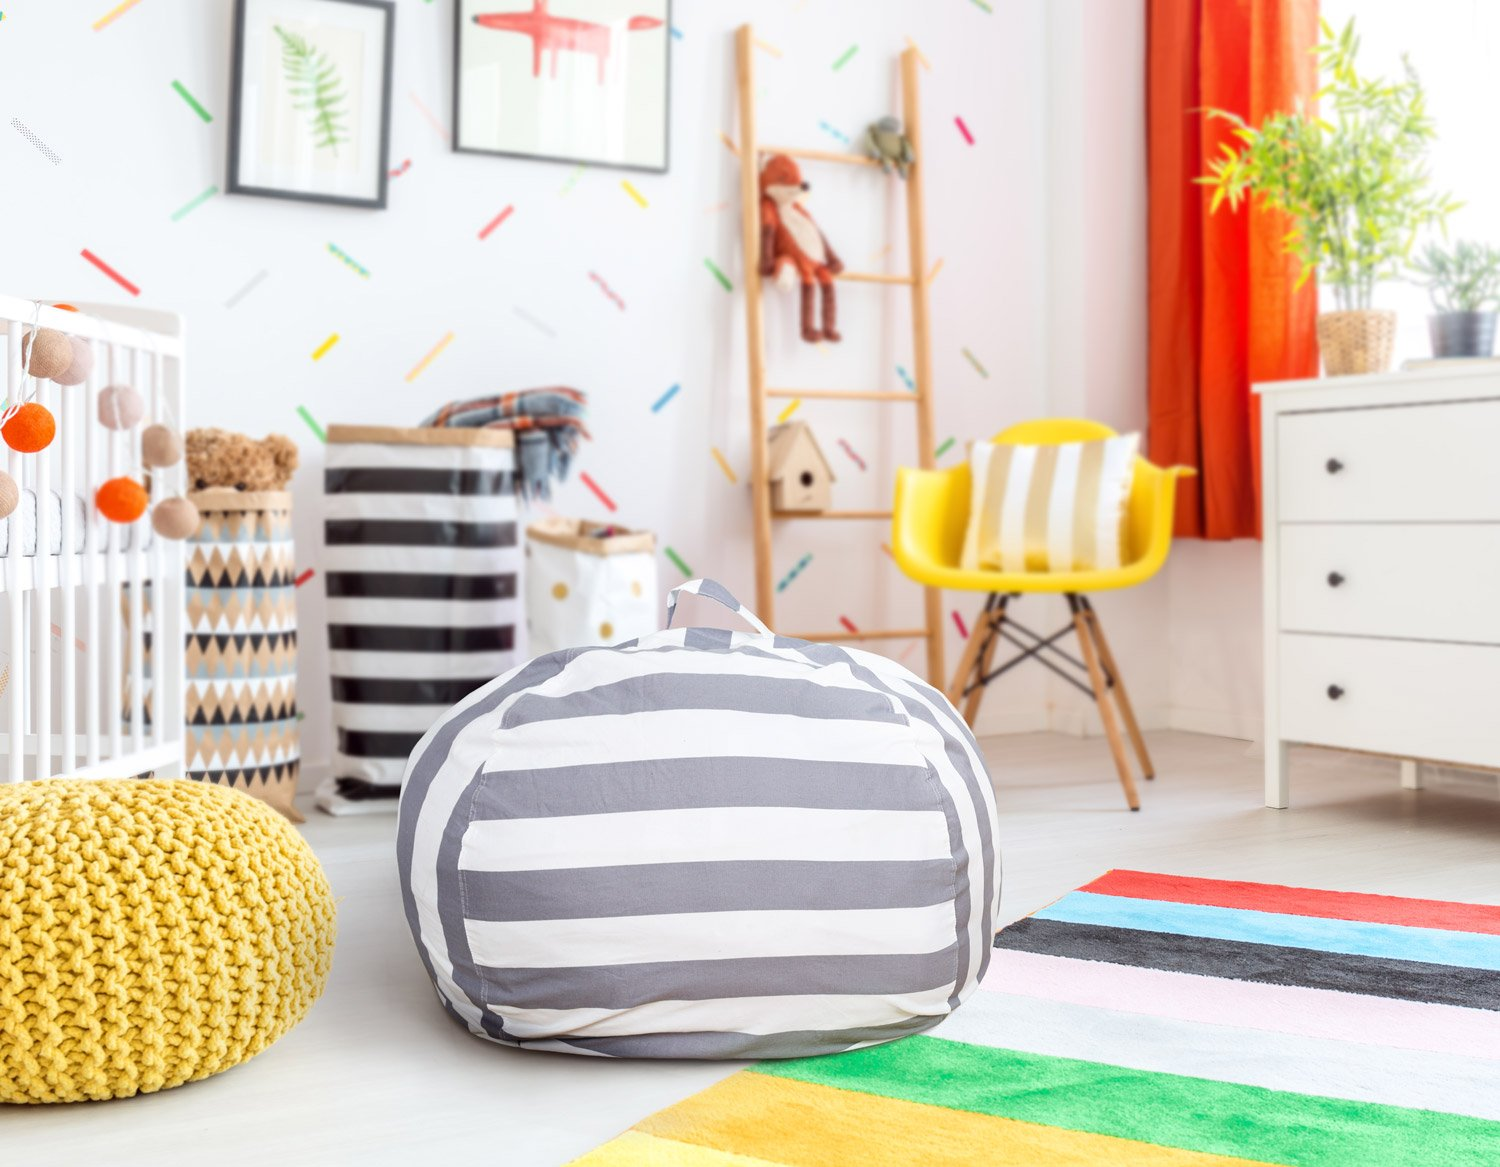 BROLEX Extra Large 38'' Stuffed Animals Bean Bag Chair Cover-100% Cotton Canvas Kids Toy Storage Zipper Bags Comfy Pouf for Unisex Boys Girls Toddlar, Grey White Stripe